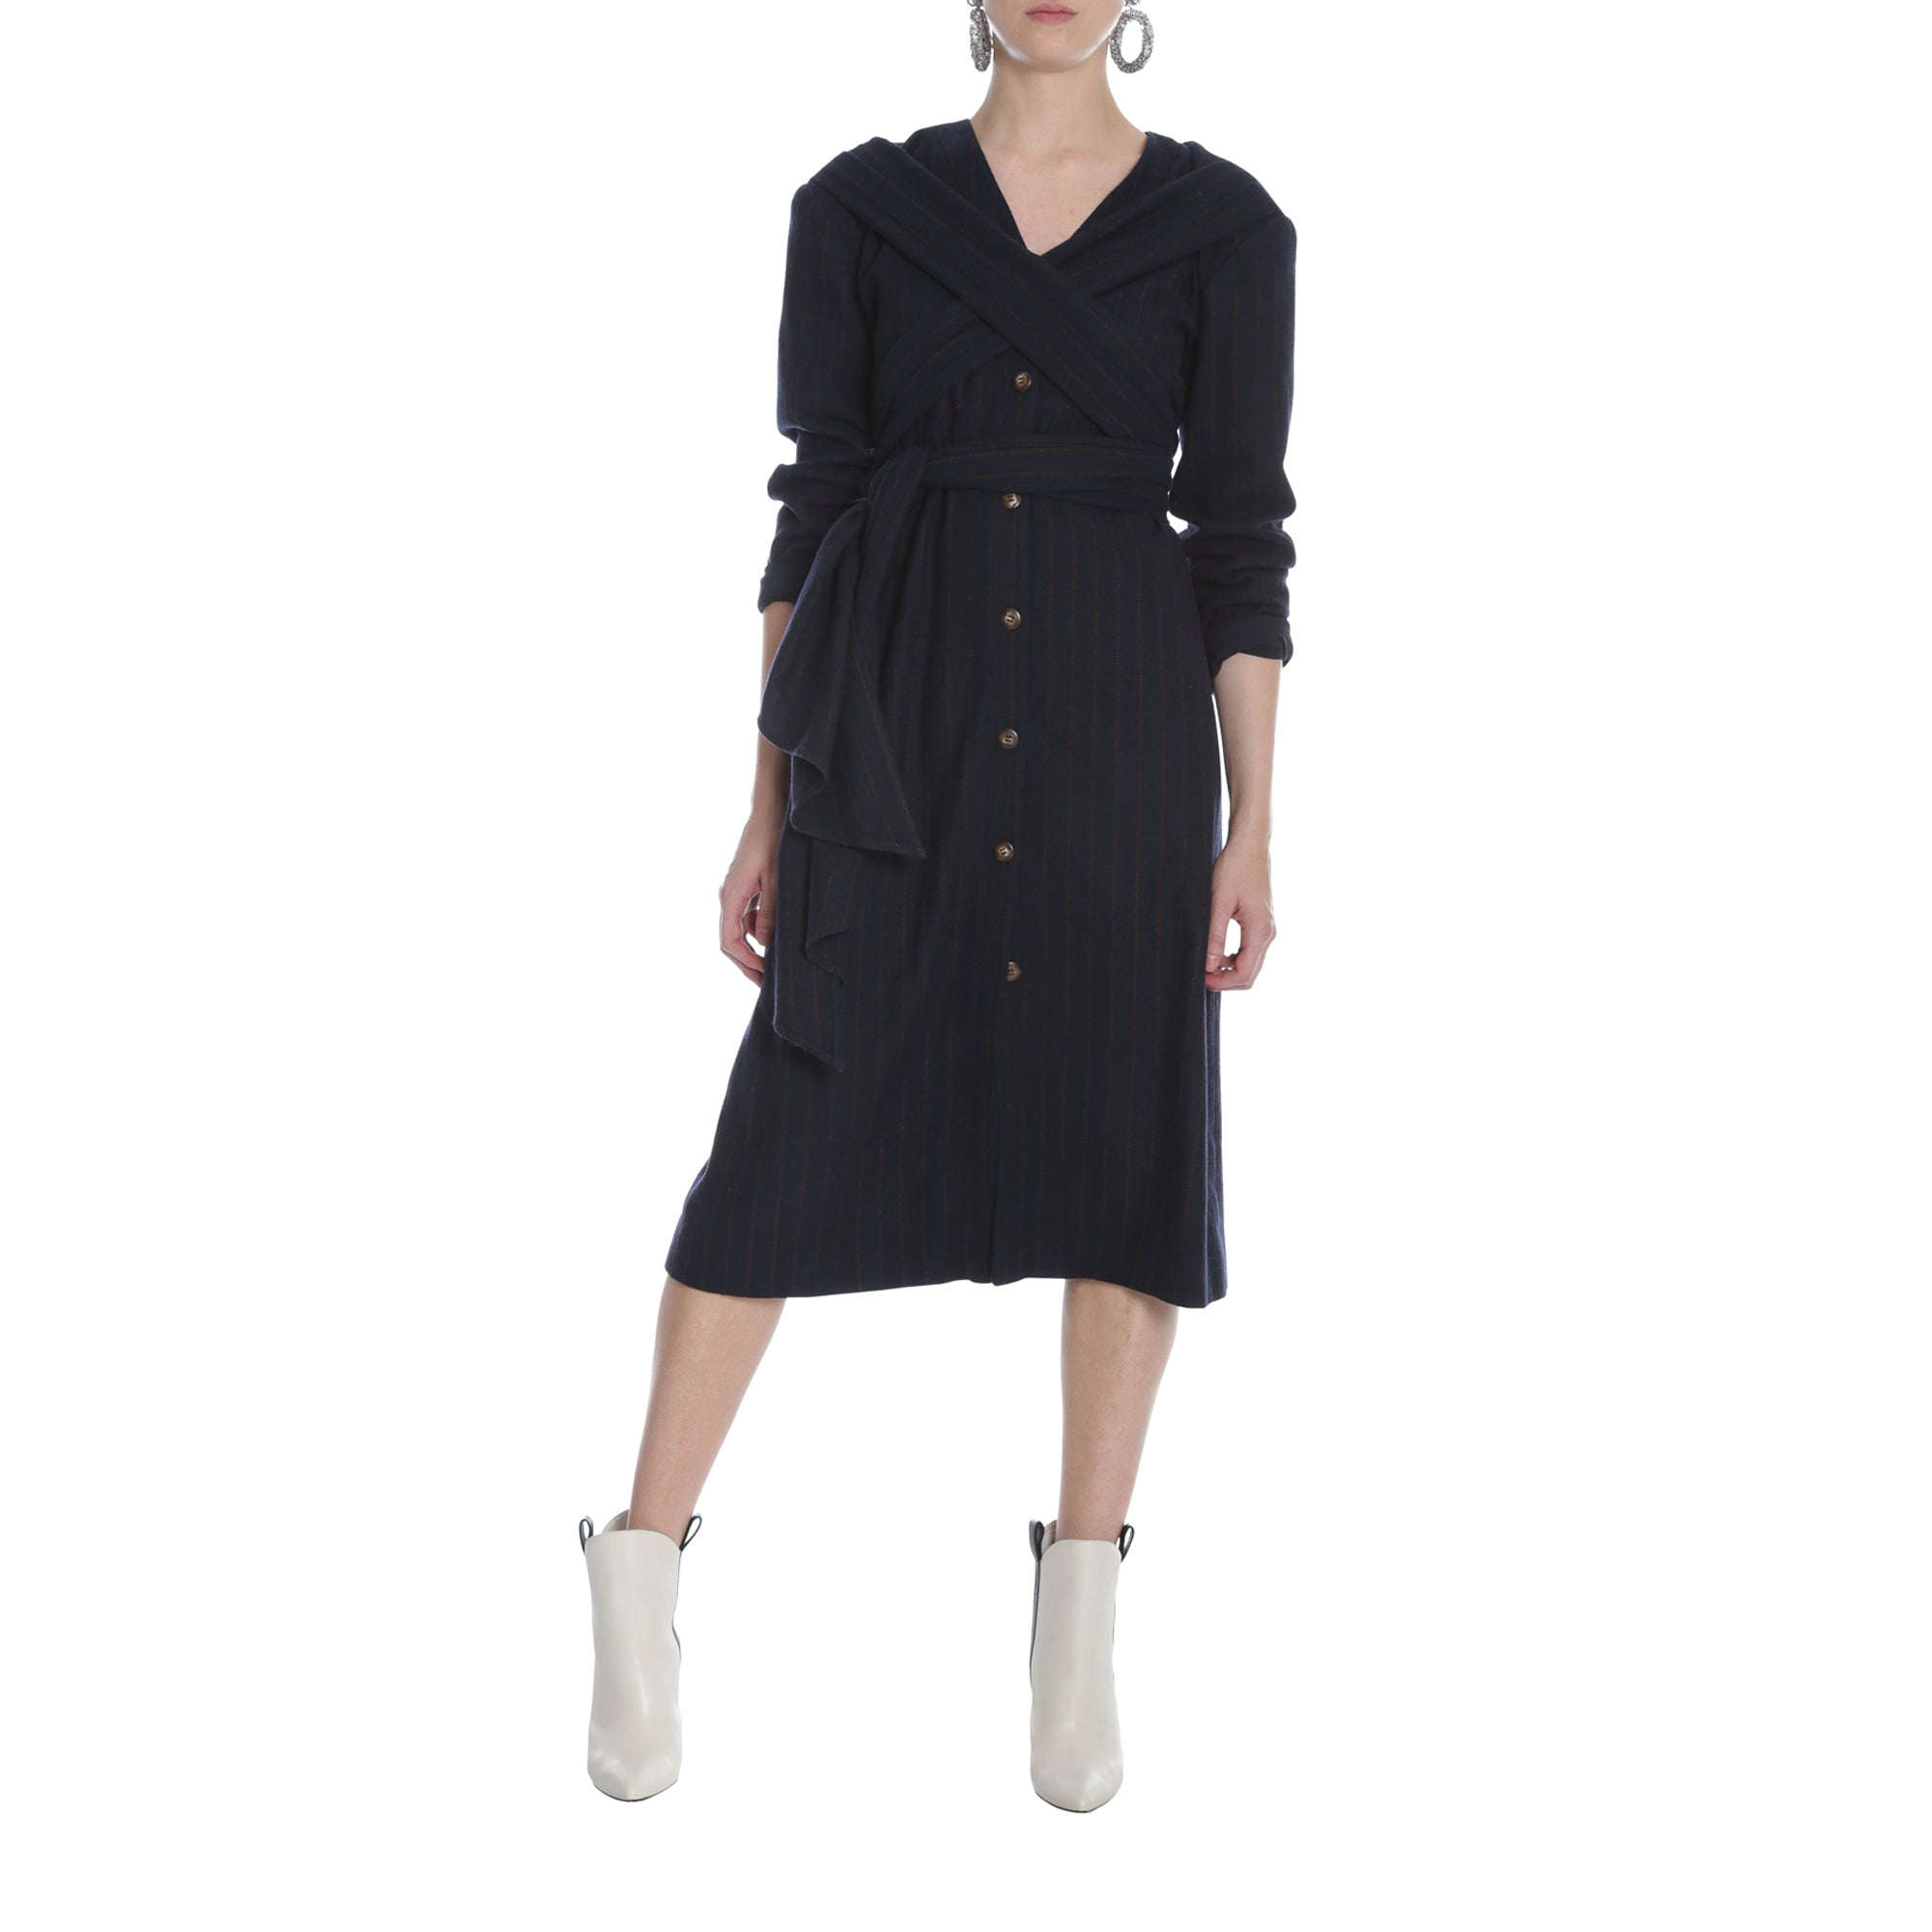 Catherine Coat Dress